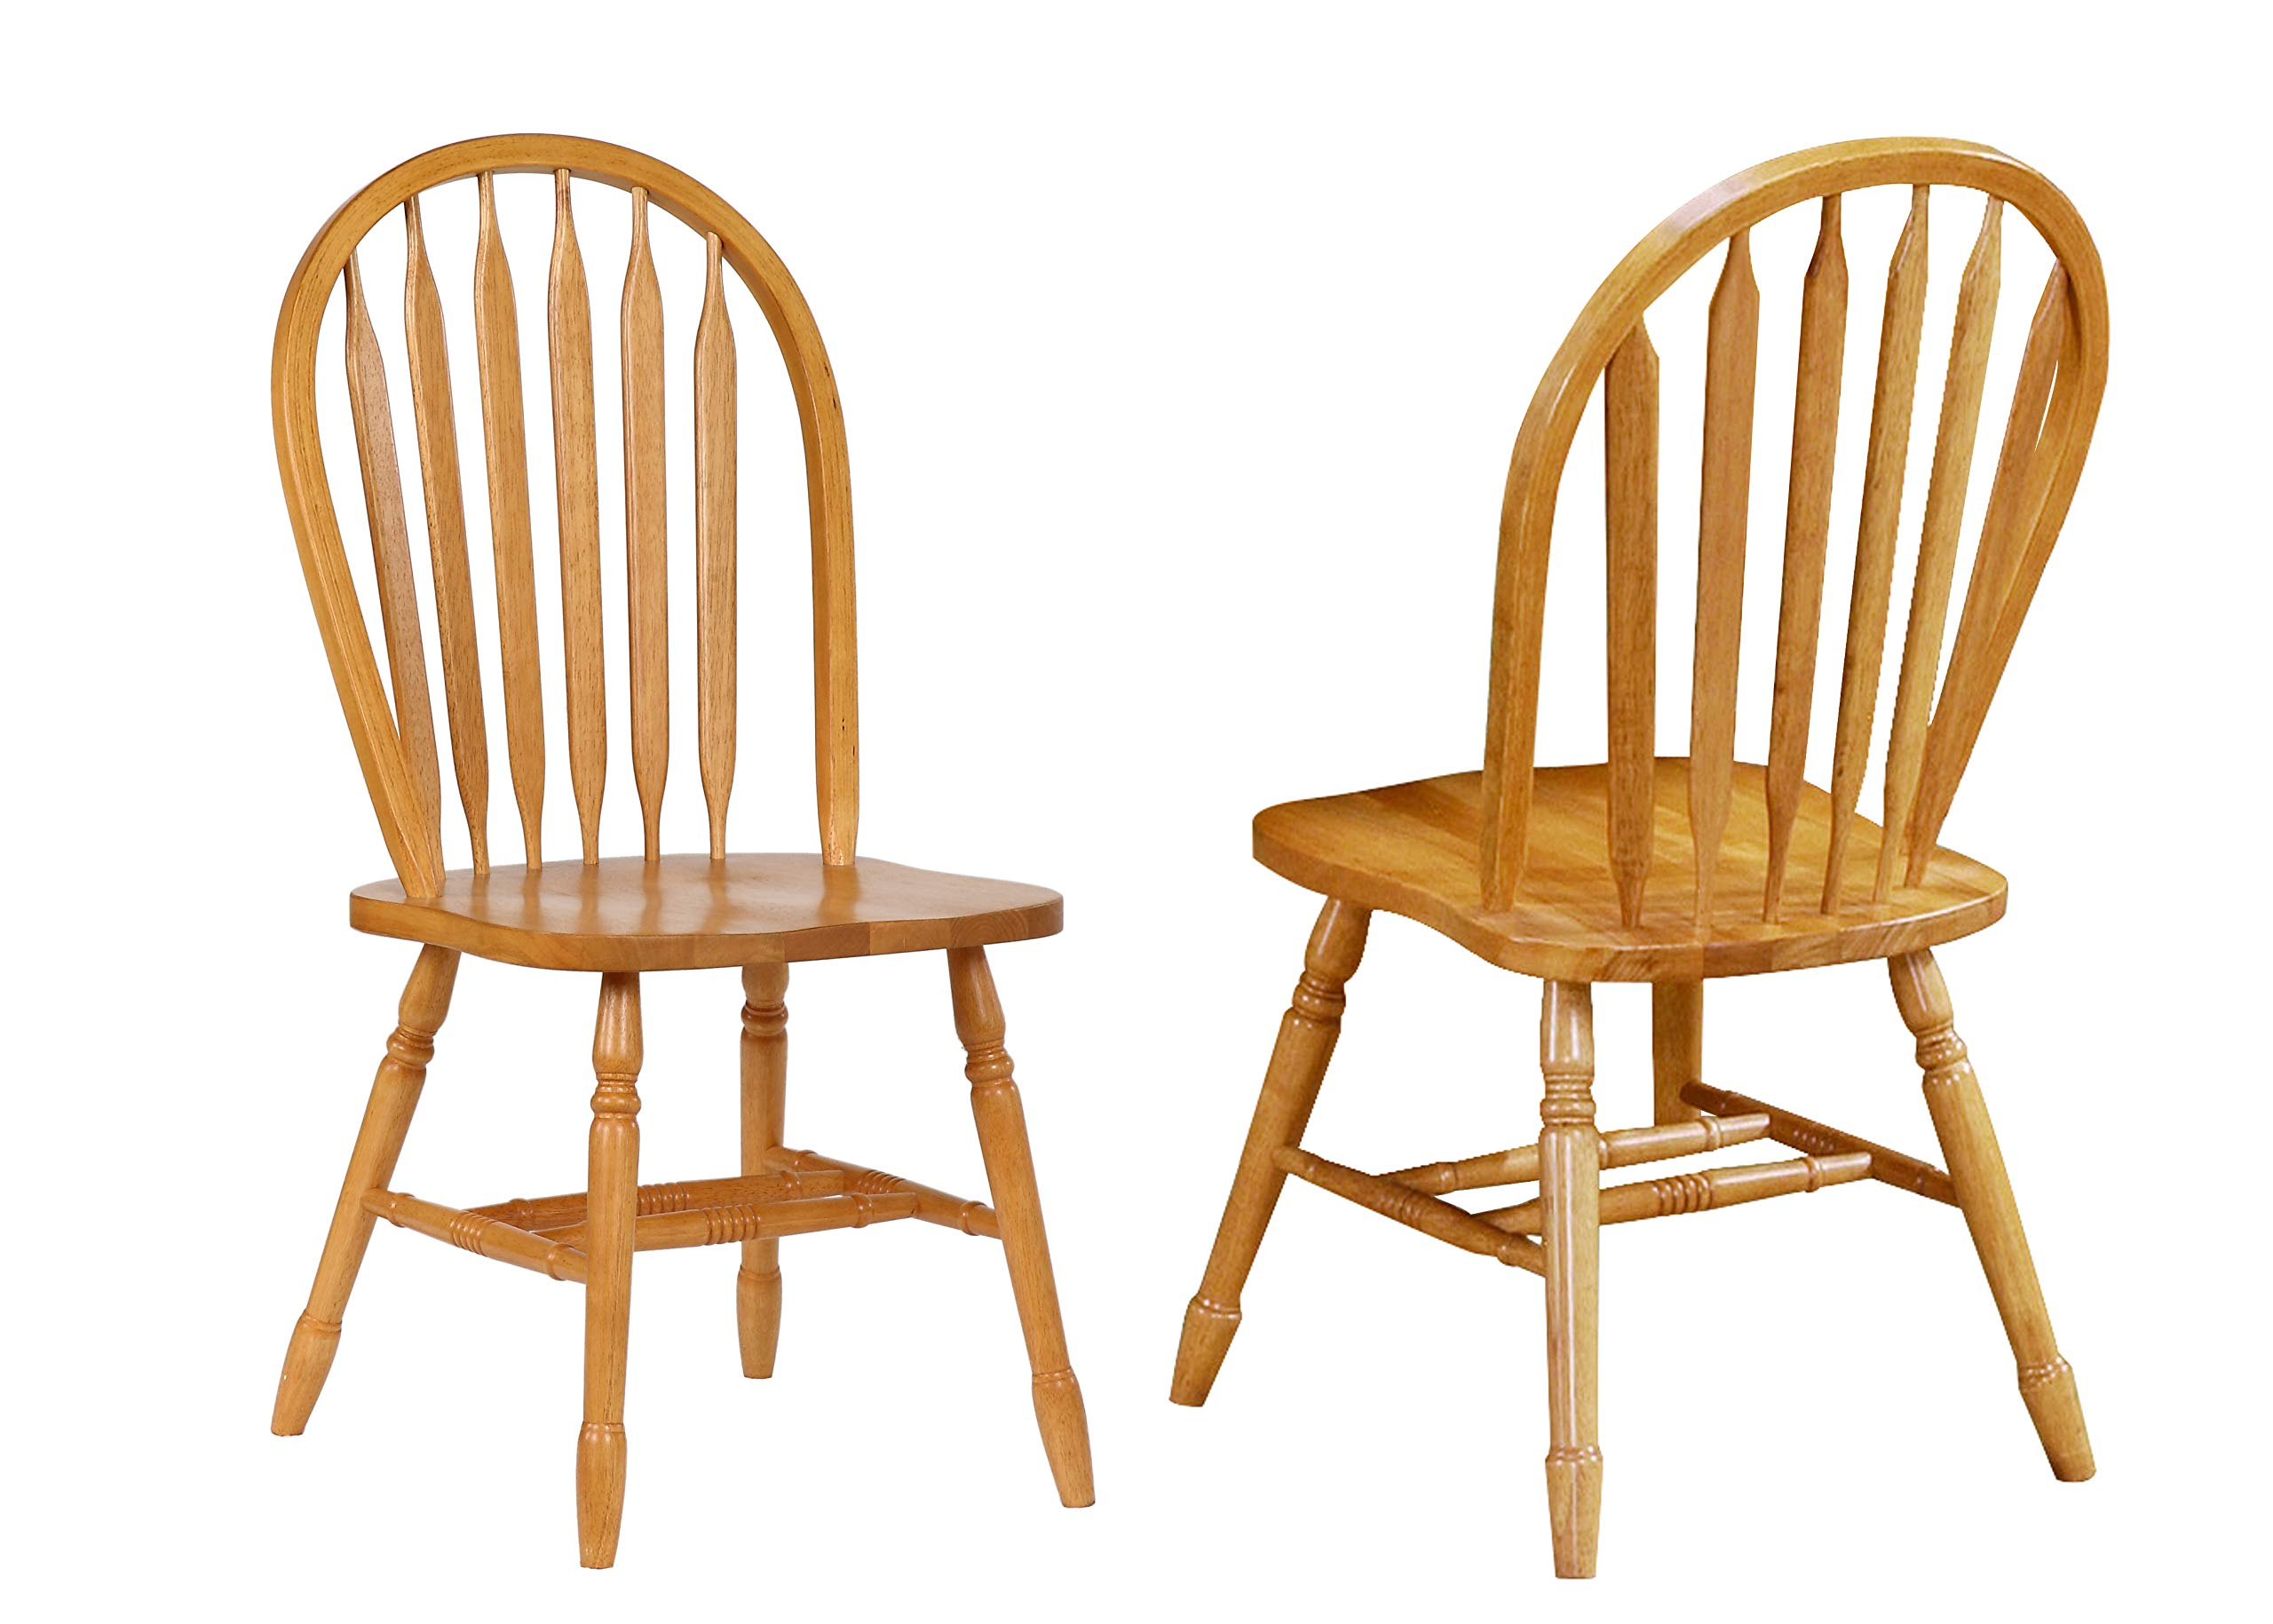 Sunset Trading Arrowback Dining Chair, Set of 2, 38'', Light Oak by Sunset Trading (Image #1)